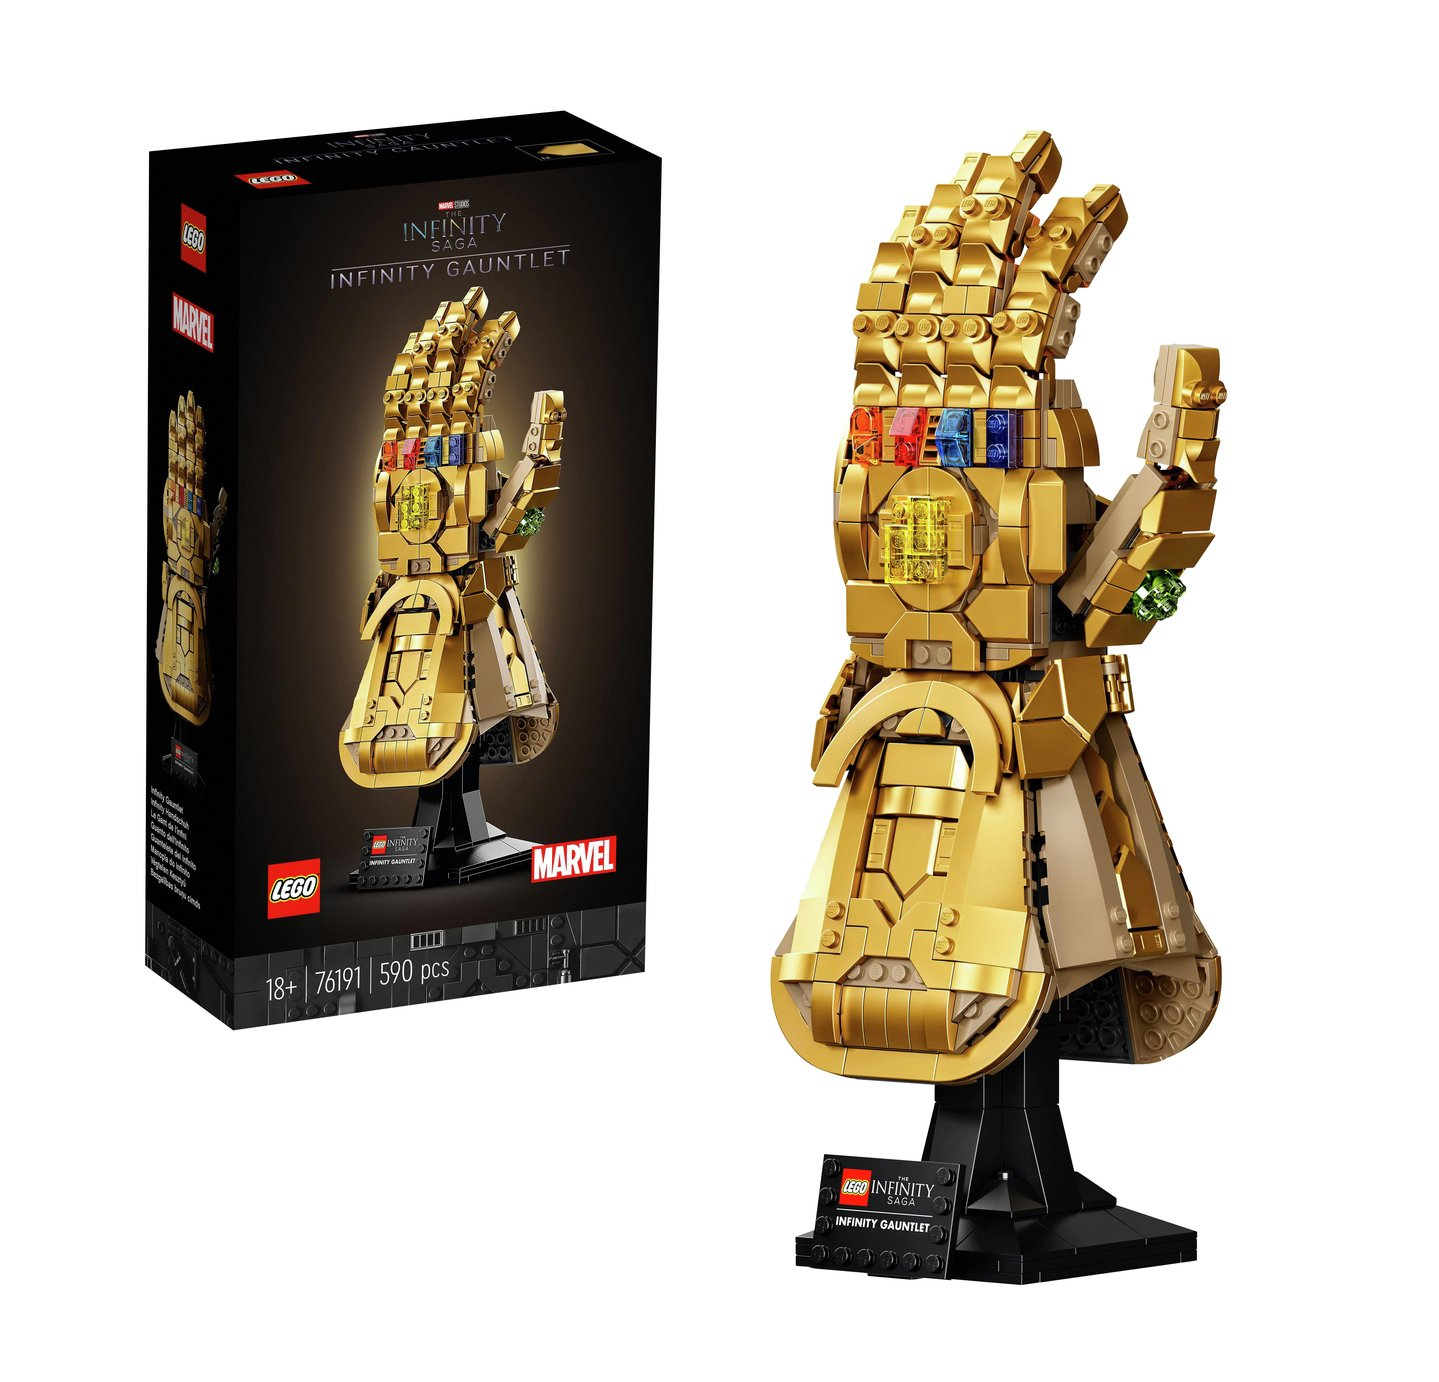 LEGO 76191 Marvel Infinity Gauntlet Building Set, Thanos Glove Model for Adults, Collectible Avengers Gift